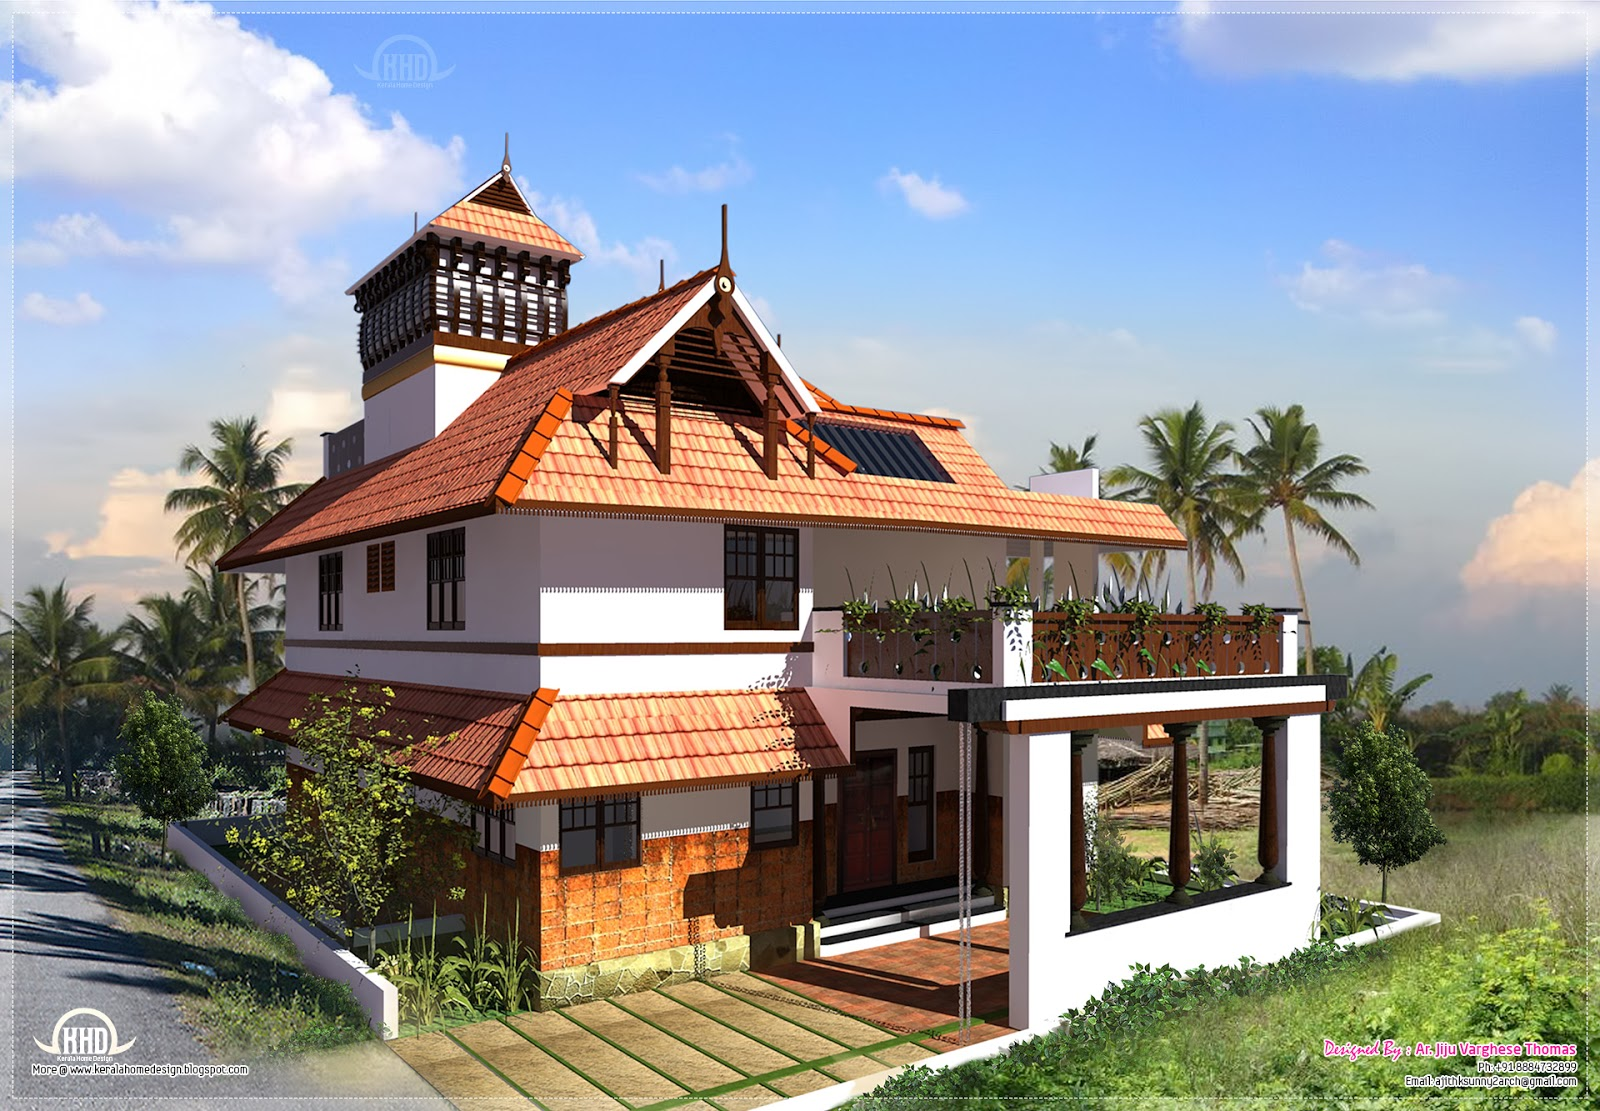 Kerala traditional house plans design joy studio design for House plans in kerala